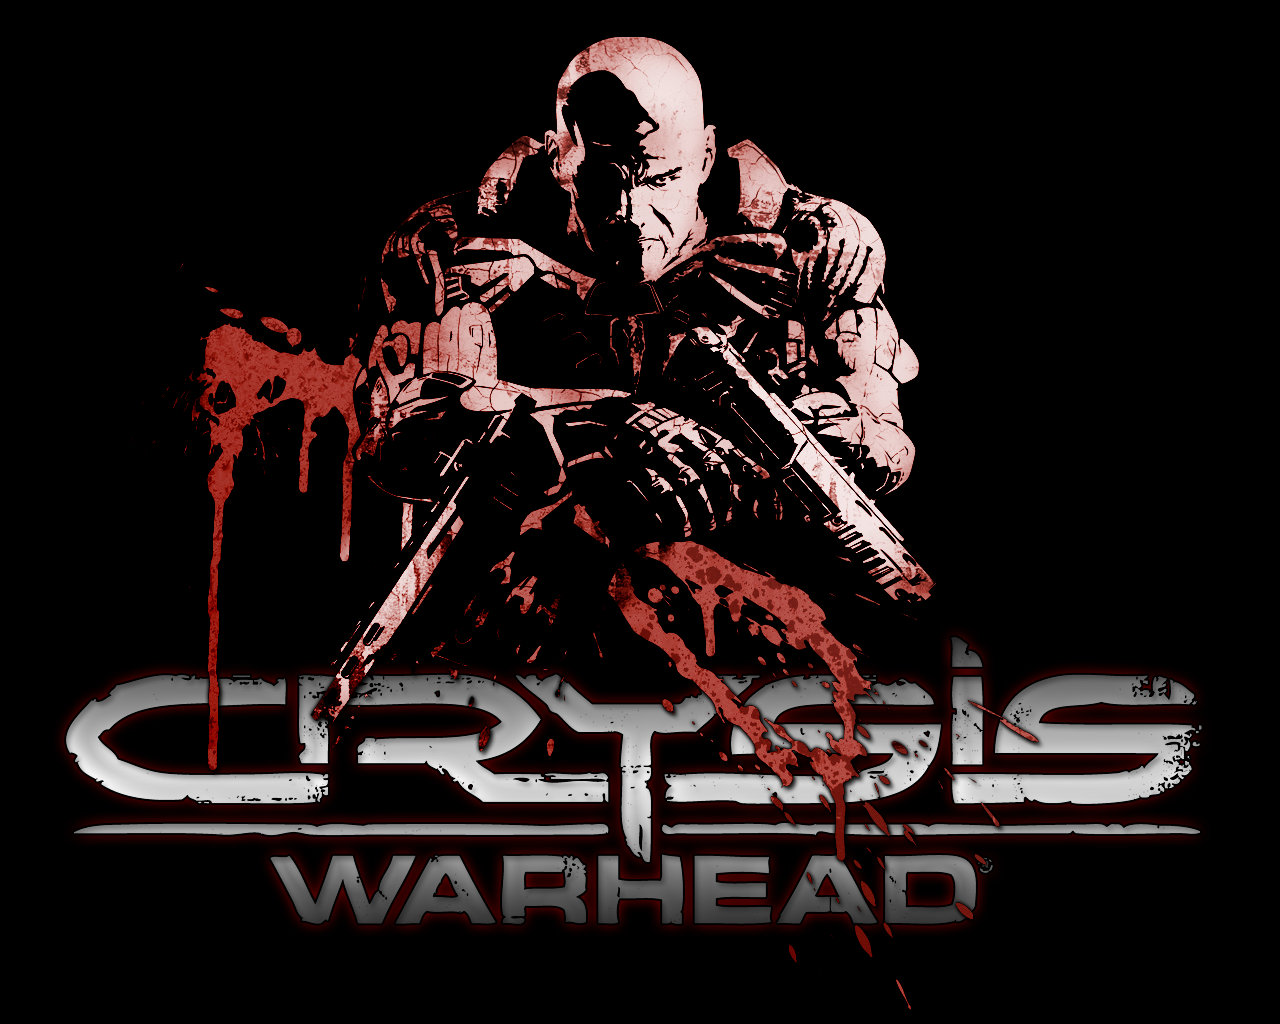 crysis warhead wallpaper by pn0yb0i on deviantart